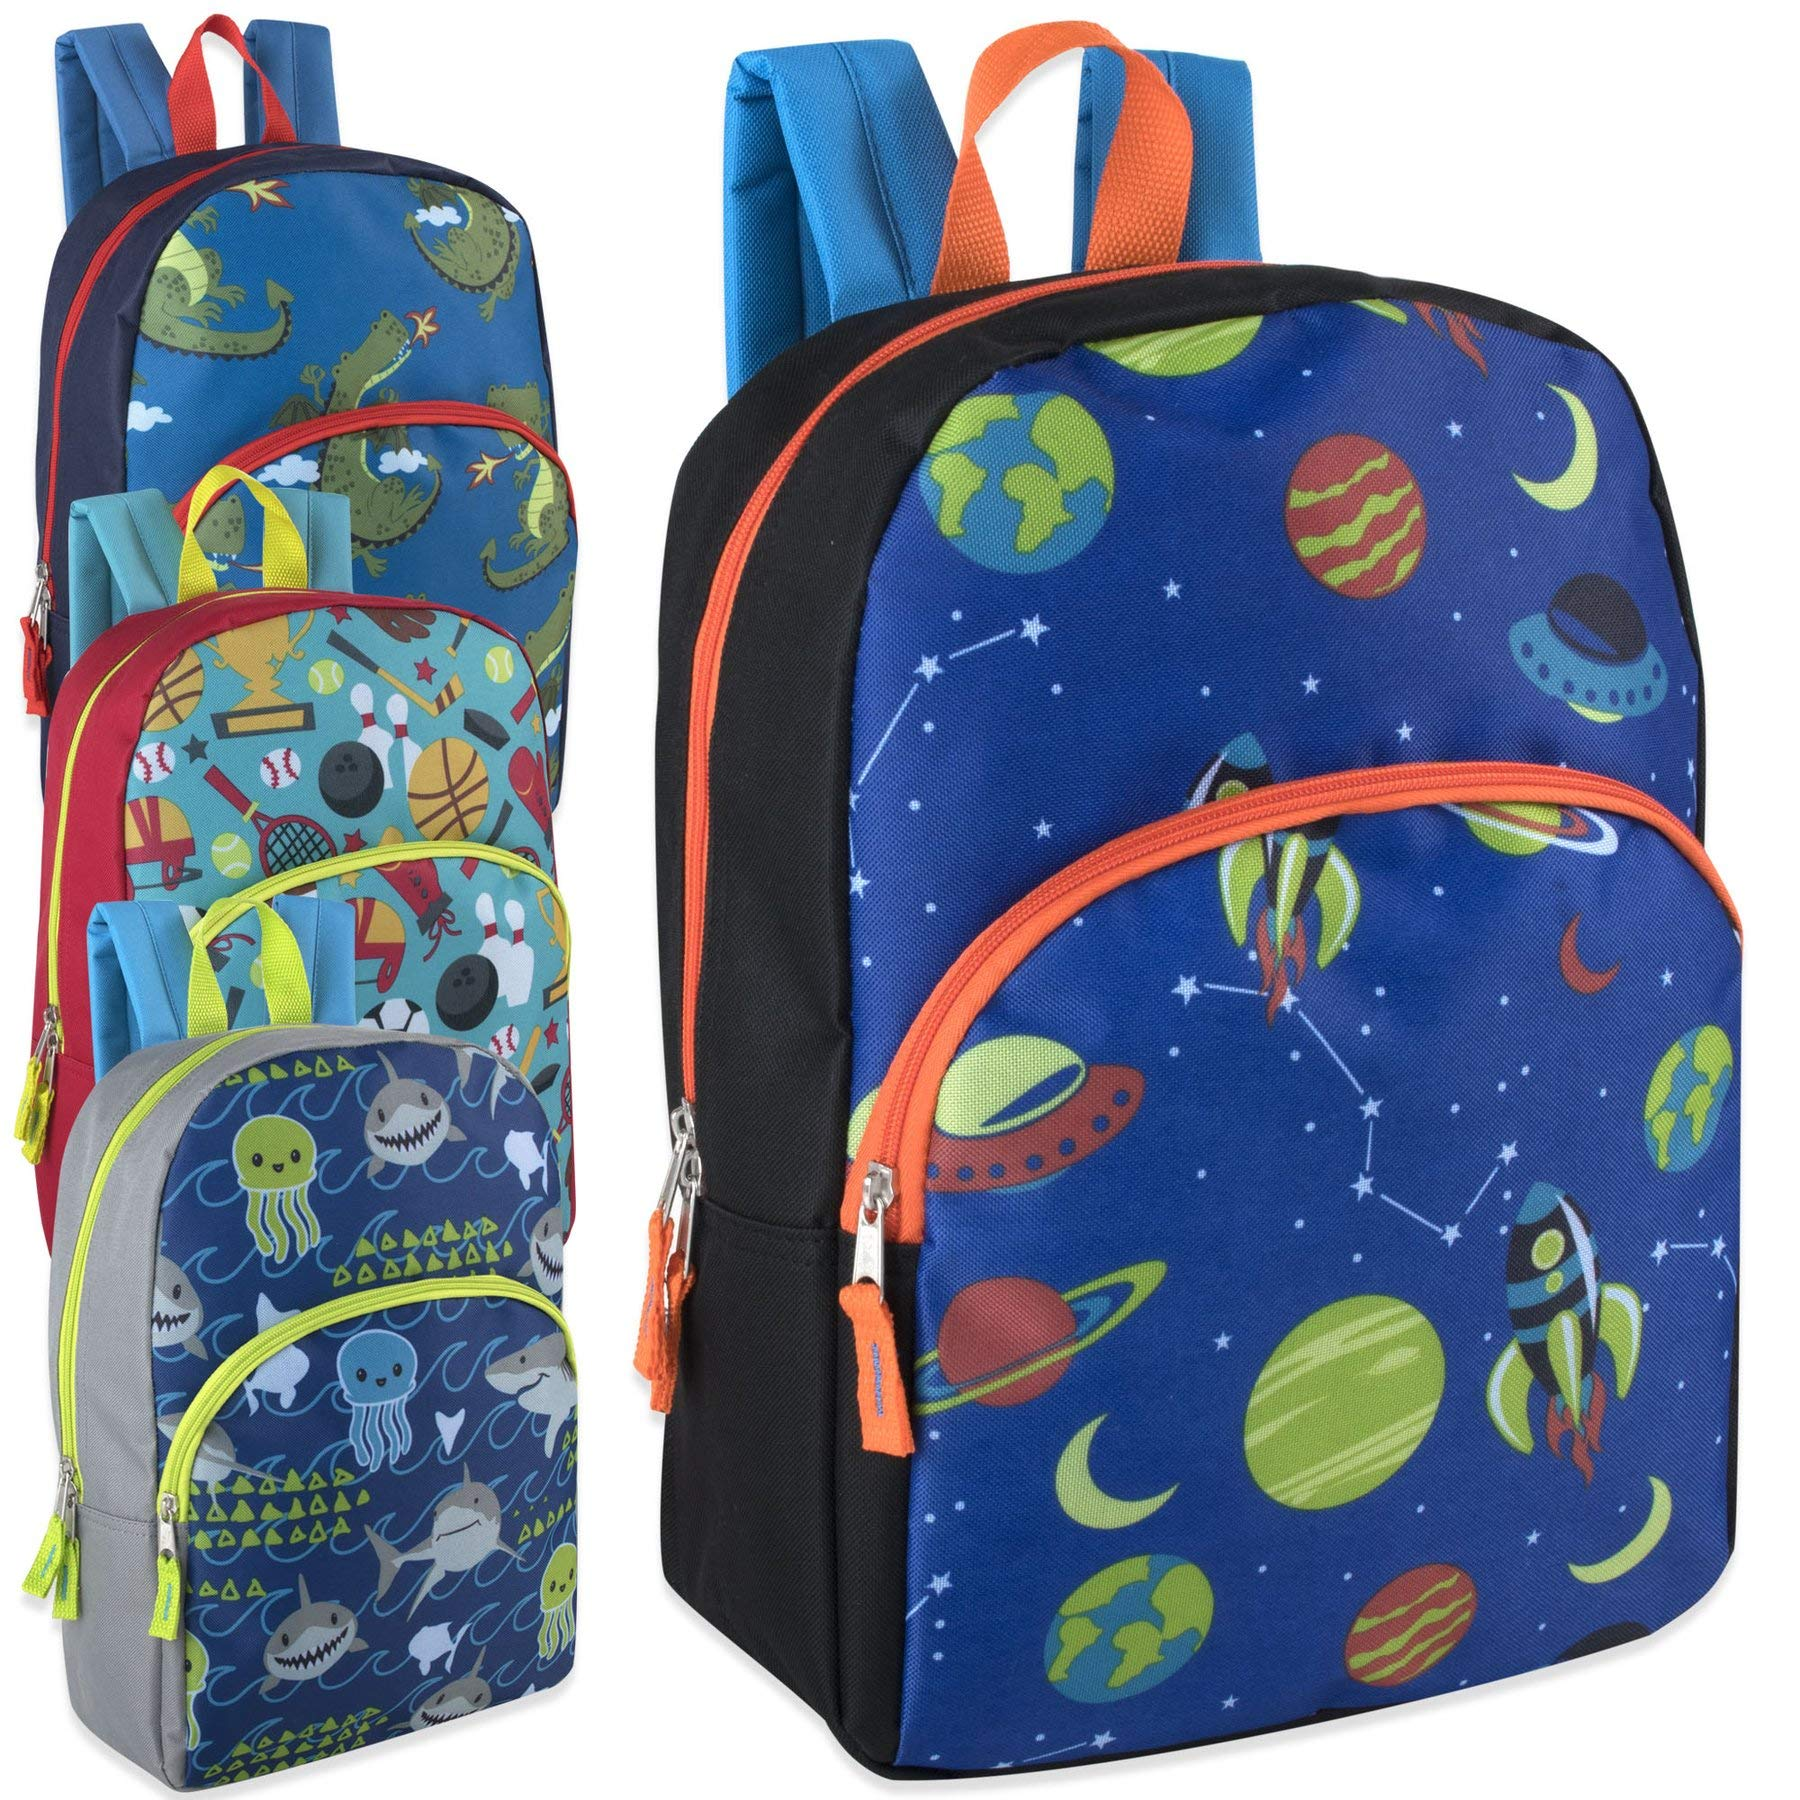 Lot of 24 Wholesale 15 Inch Printed Character Backpacks for Boys by Bags In Bulk